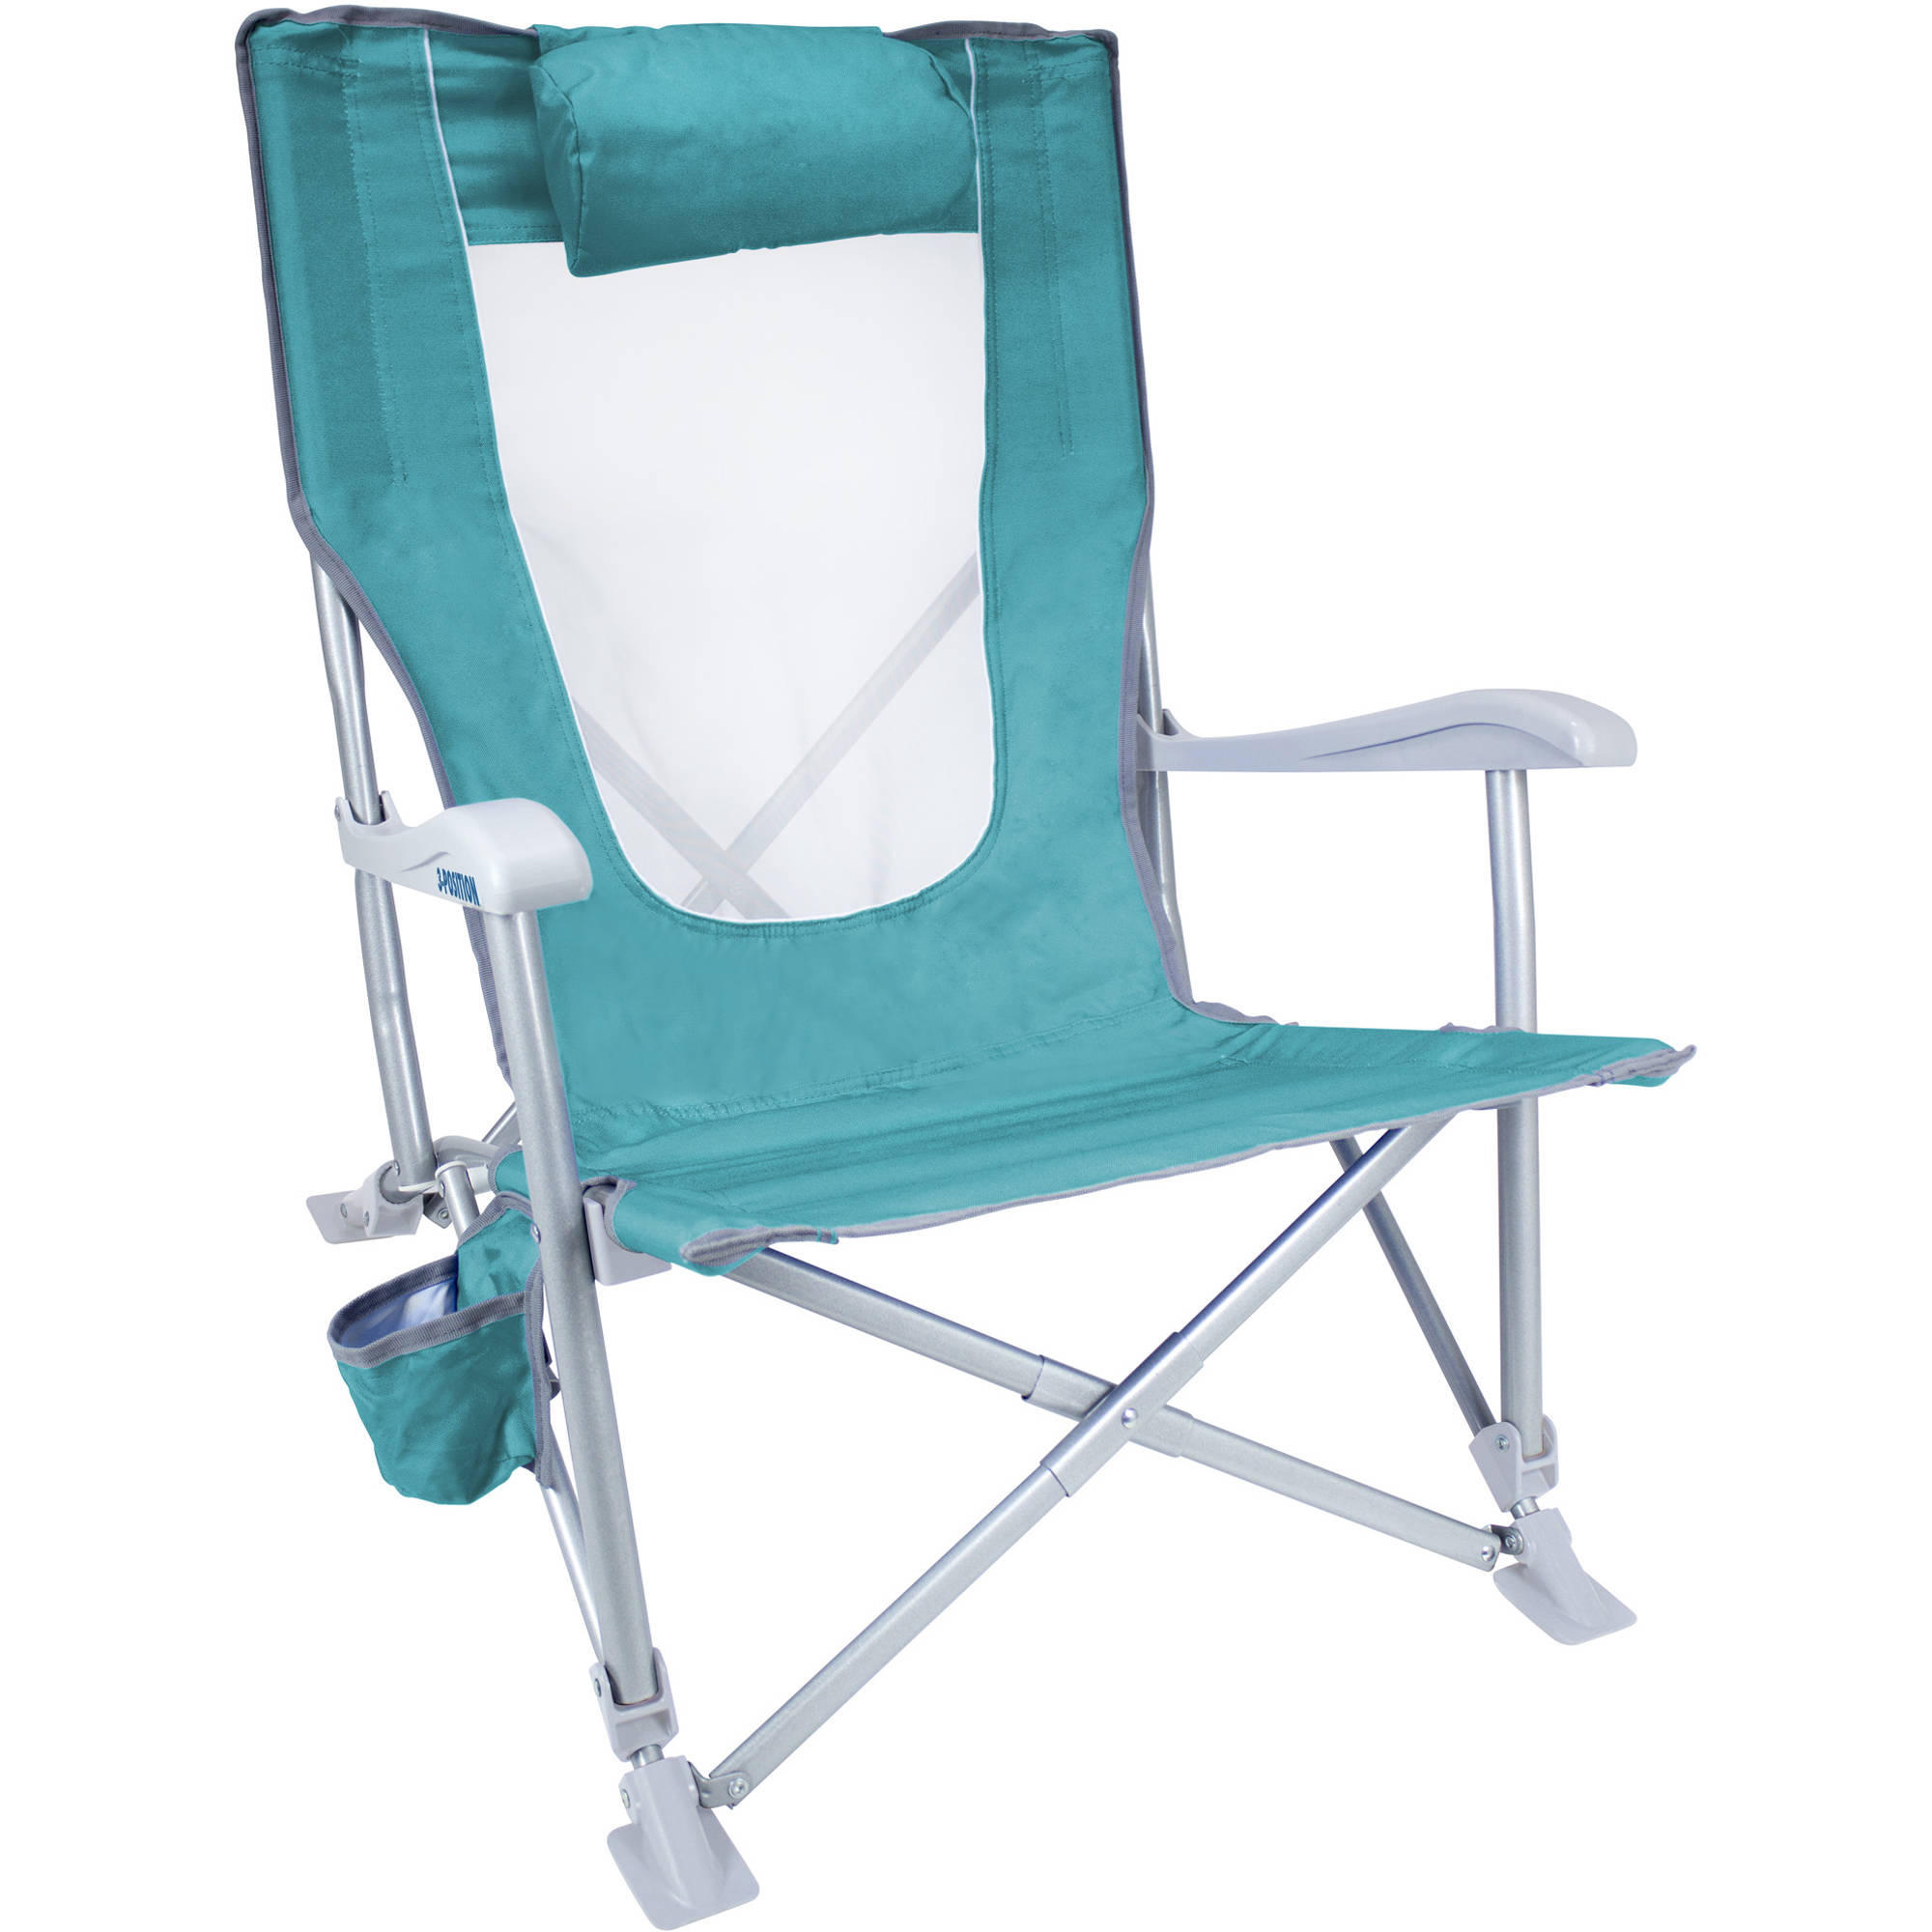 GCI Outdoor Sun Recliner Beach Chair Seafoam Green B&H